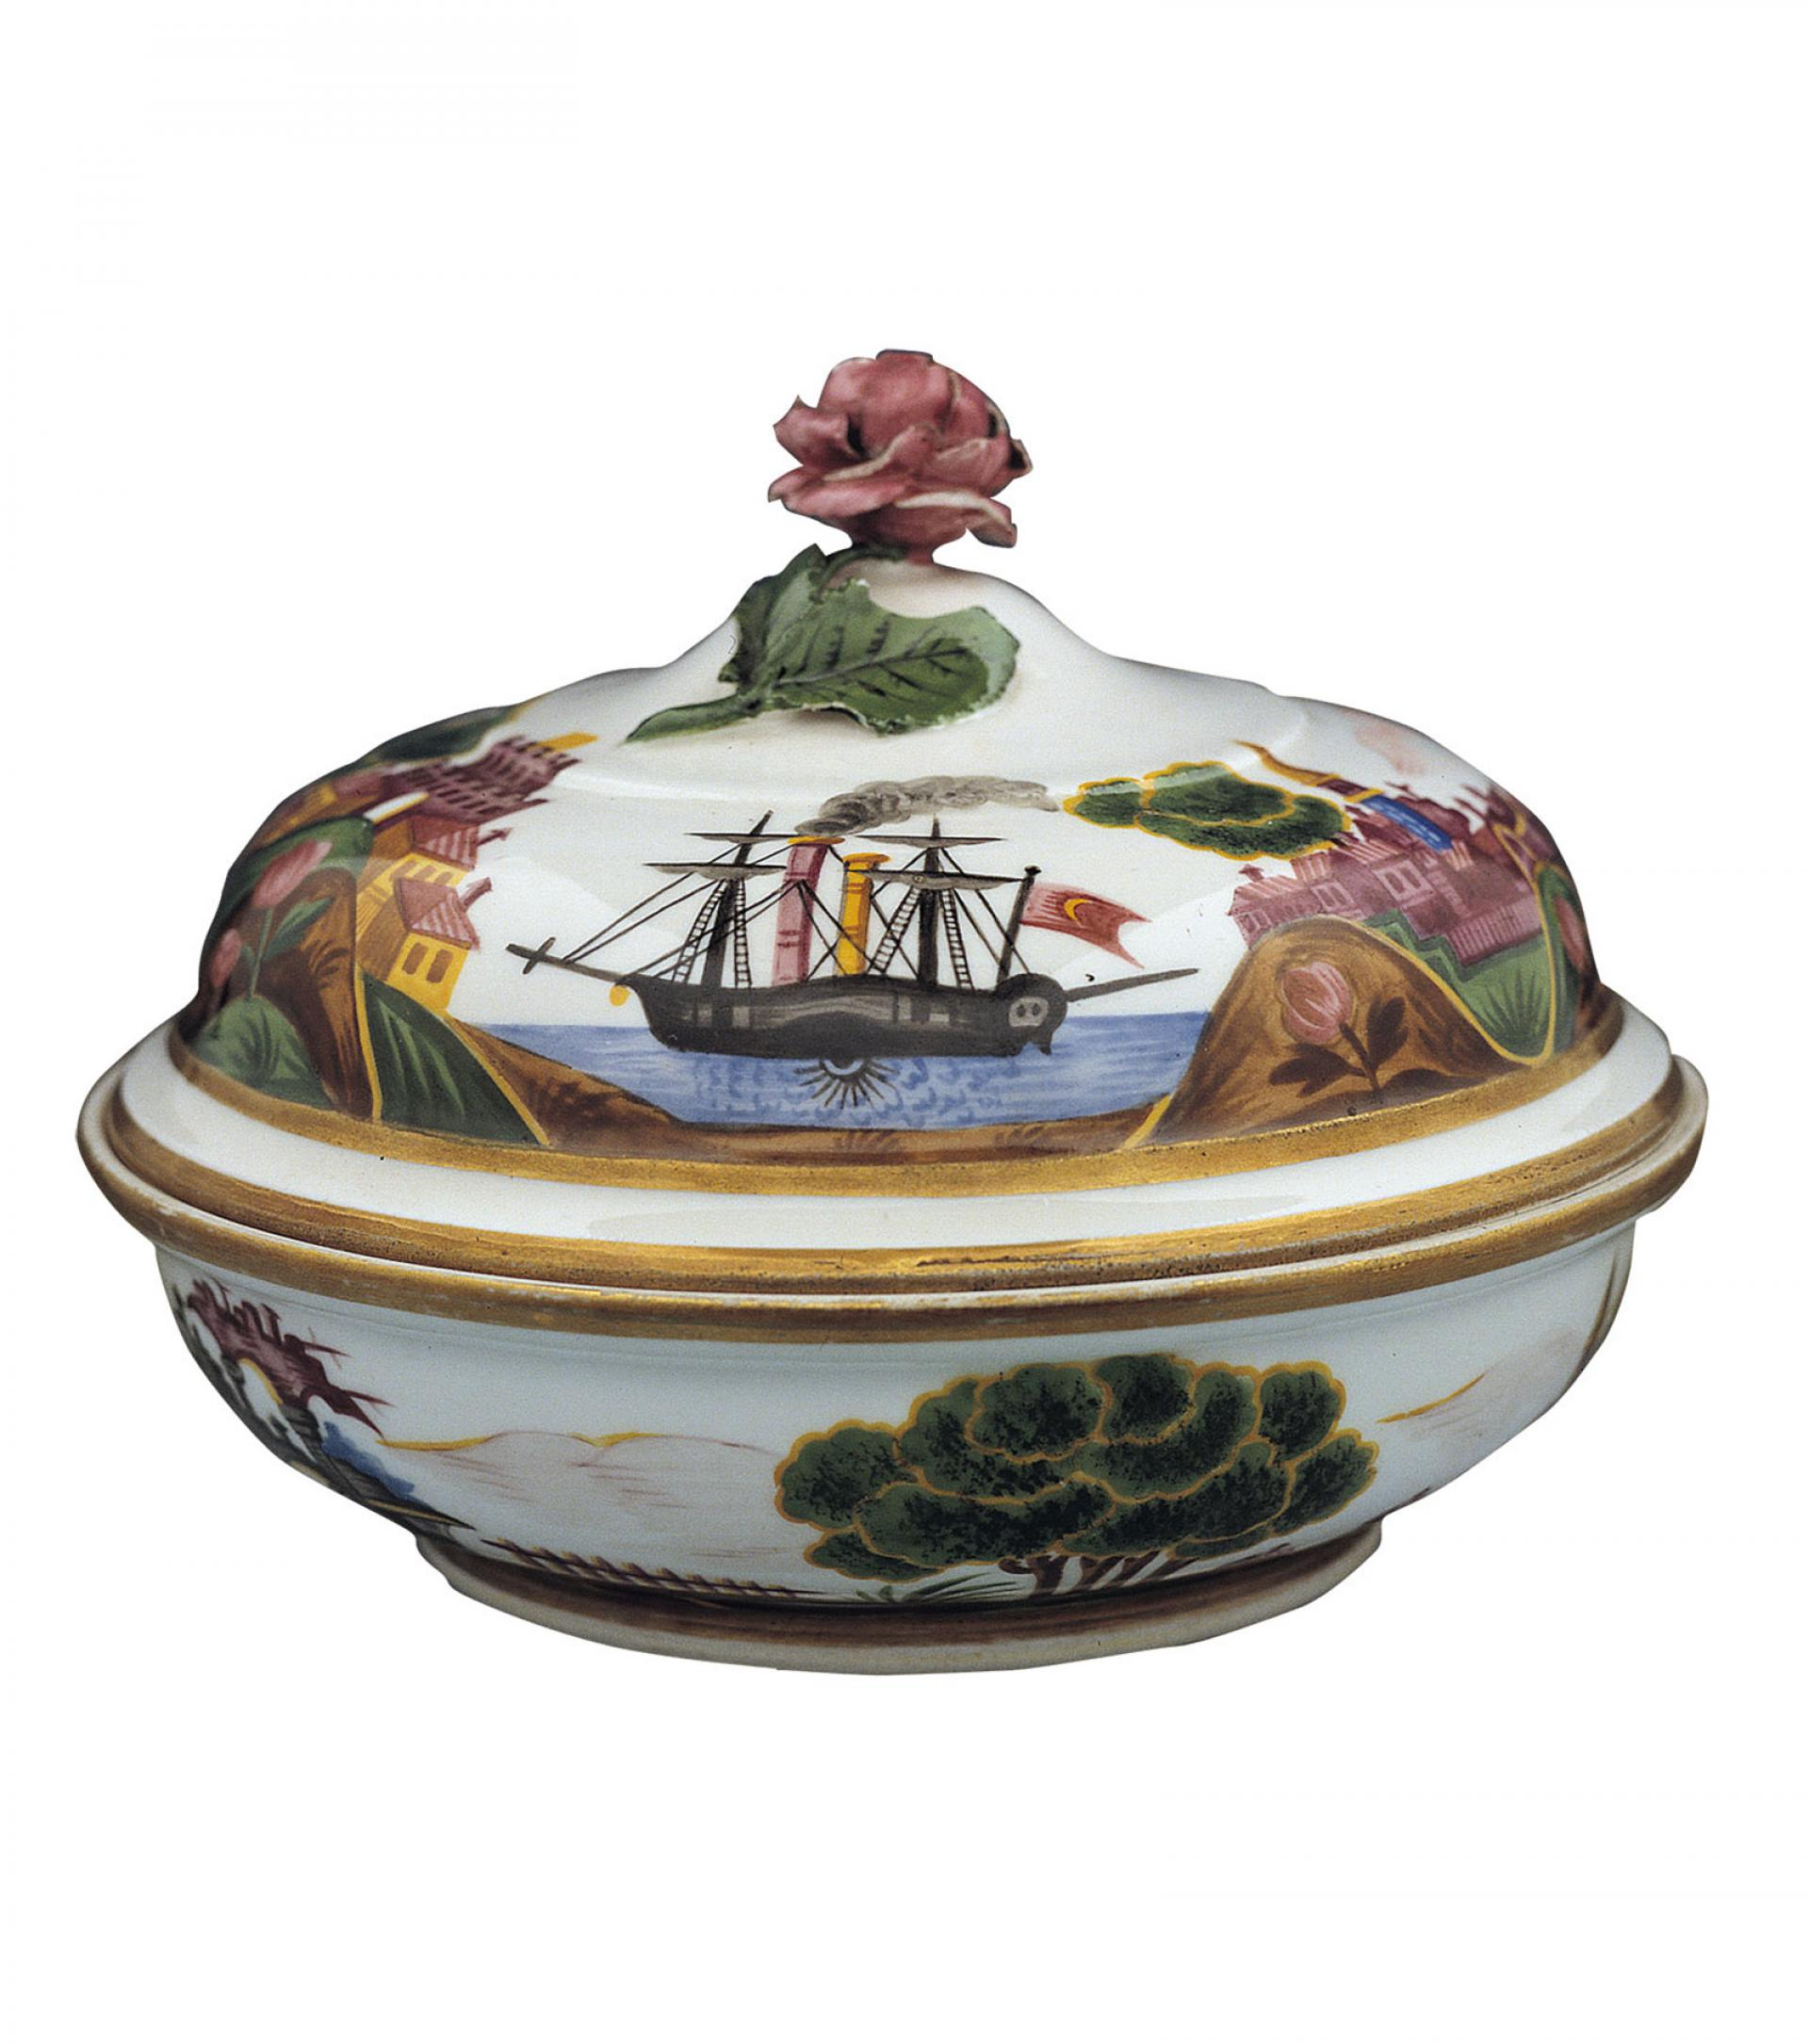 SHM3276 - Lidded dishPorcelainVienna, 19th century